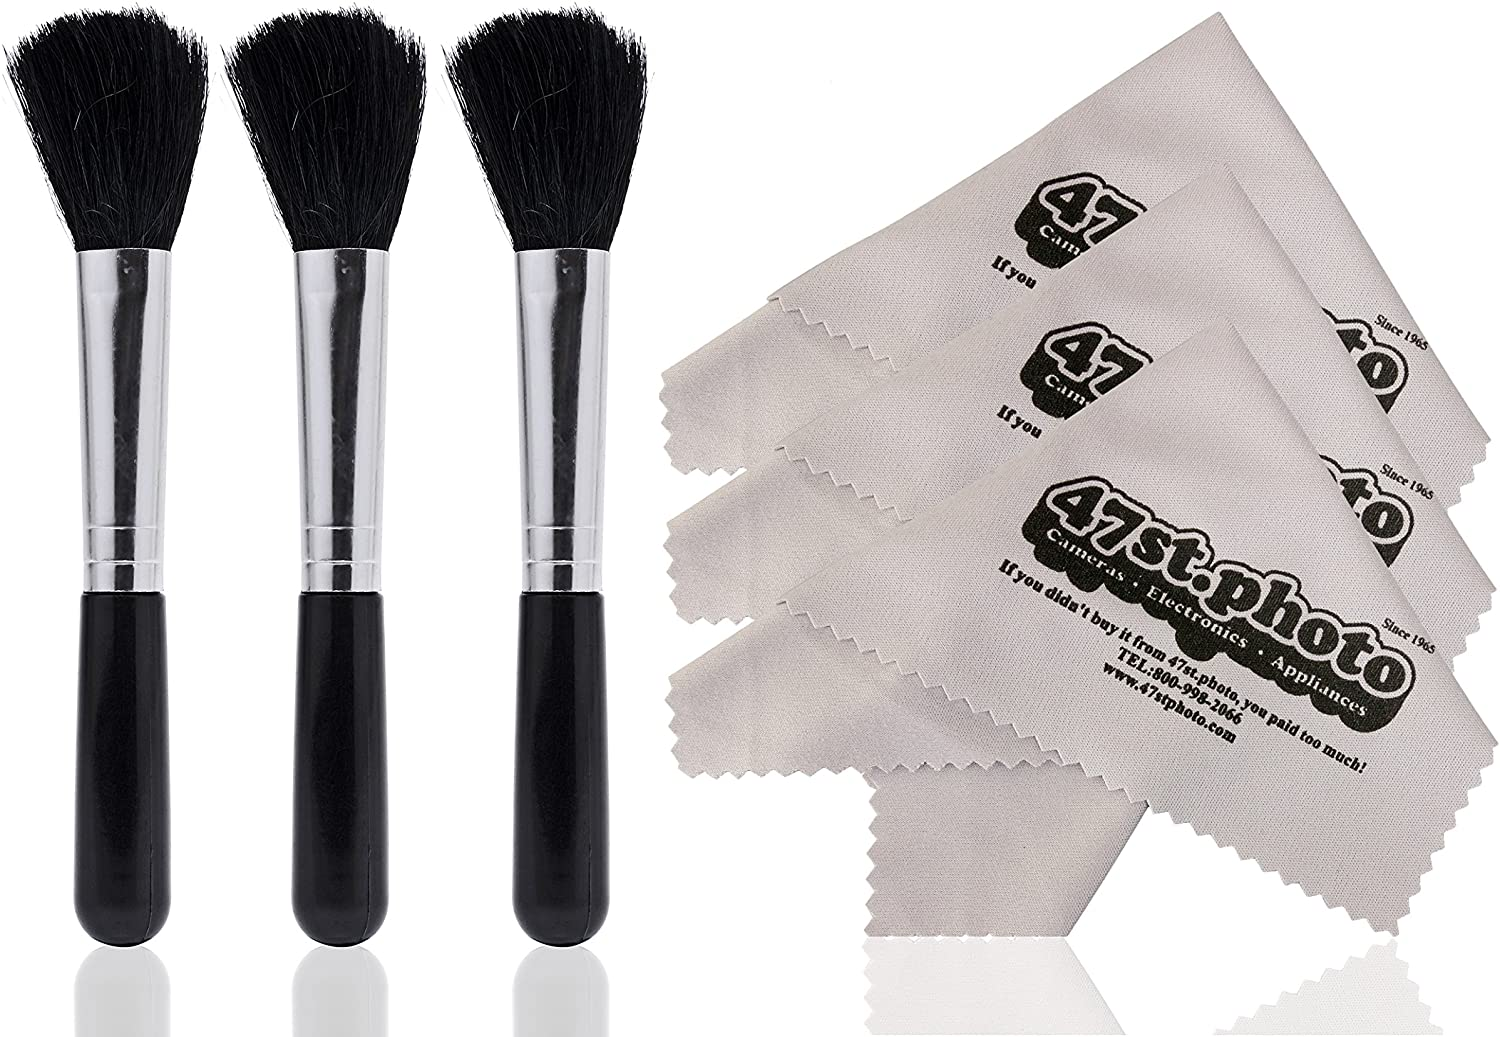 Opteka Camera Lens and Sensitive Electronics Professional Cleaning Brush (3-Pack) with Premium Microfiber Cloth (3-Pack)